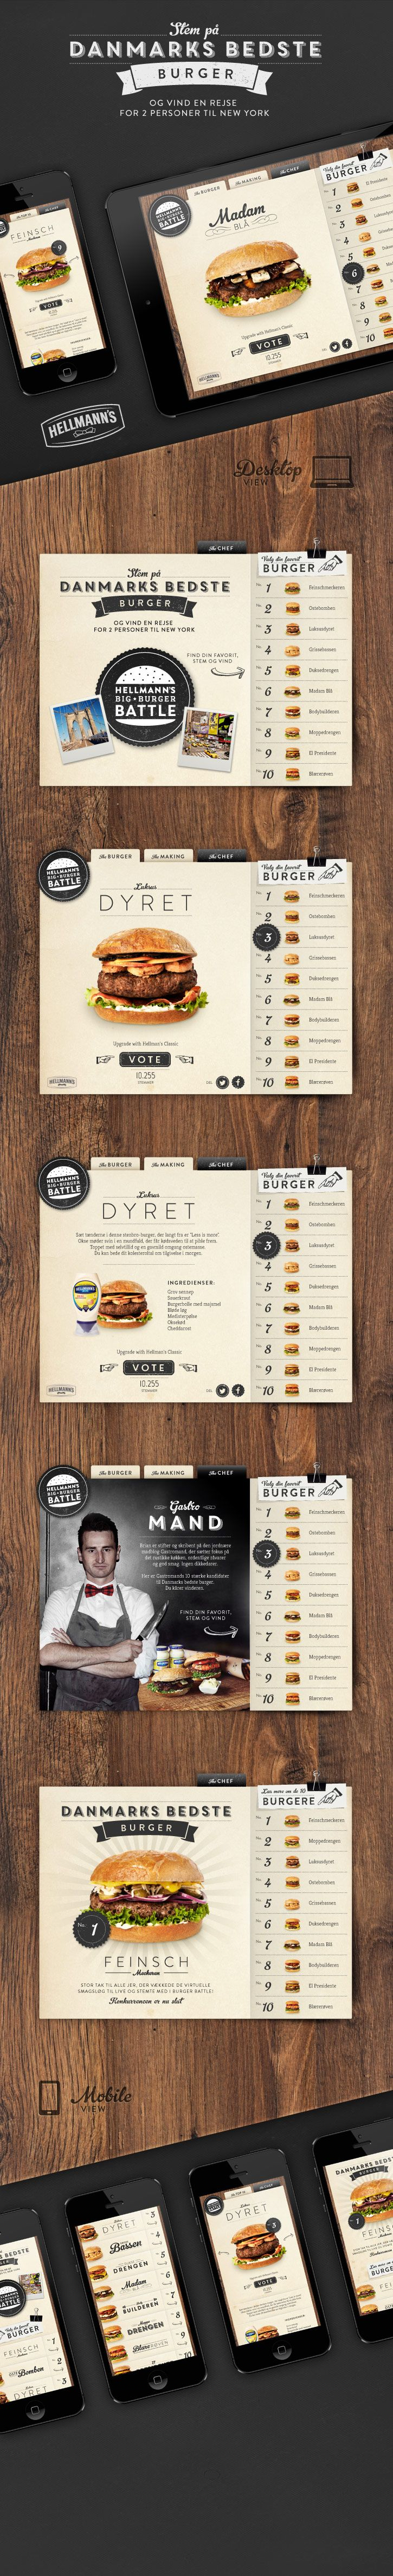 Danmark bedste burger | #webdesign #it #web #design #layout #userinterface #website #webdesign < repinned by www.BlickeDeeler.de | Visit our website www.blickedeeler.de/leistungen/webdesign